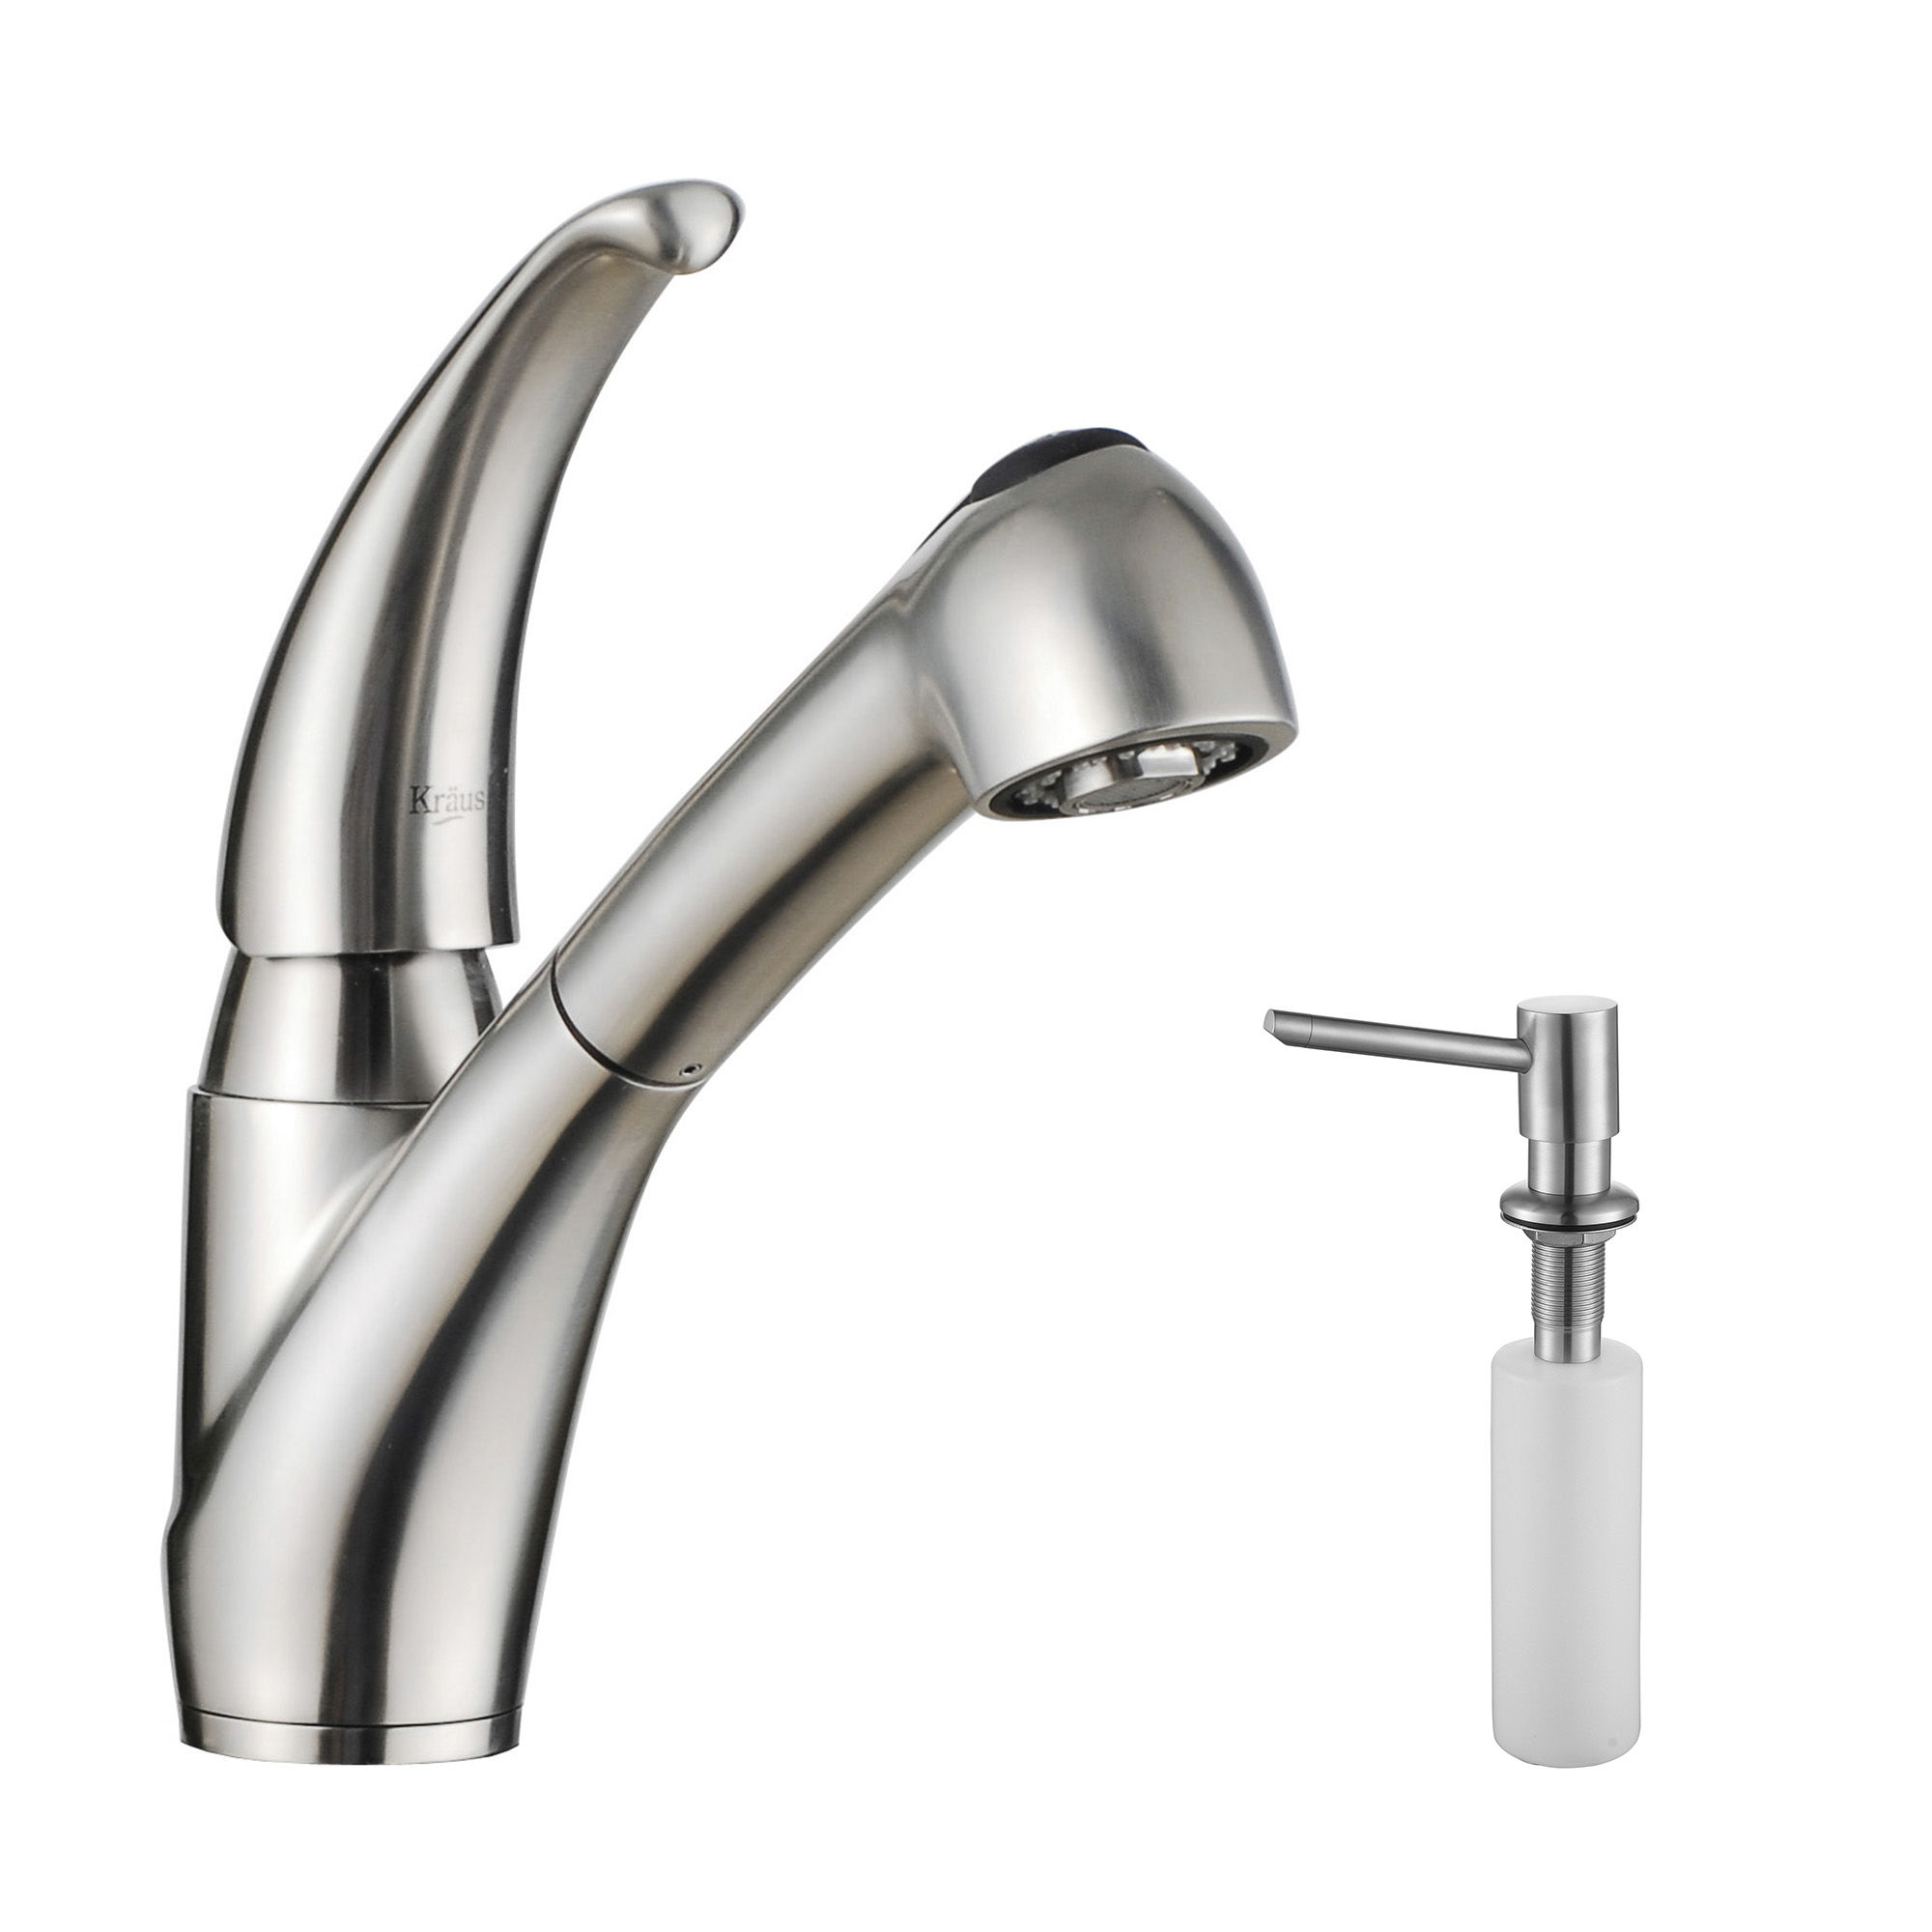 kraus kpf 2110 sd20 stainless steel stainless steel pullout spray kitchen faucet with soap dispenser faucetcom - Pull Out Kitchen Faucet